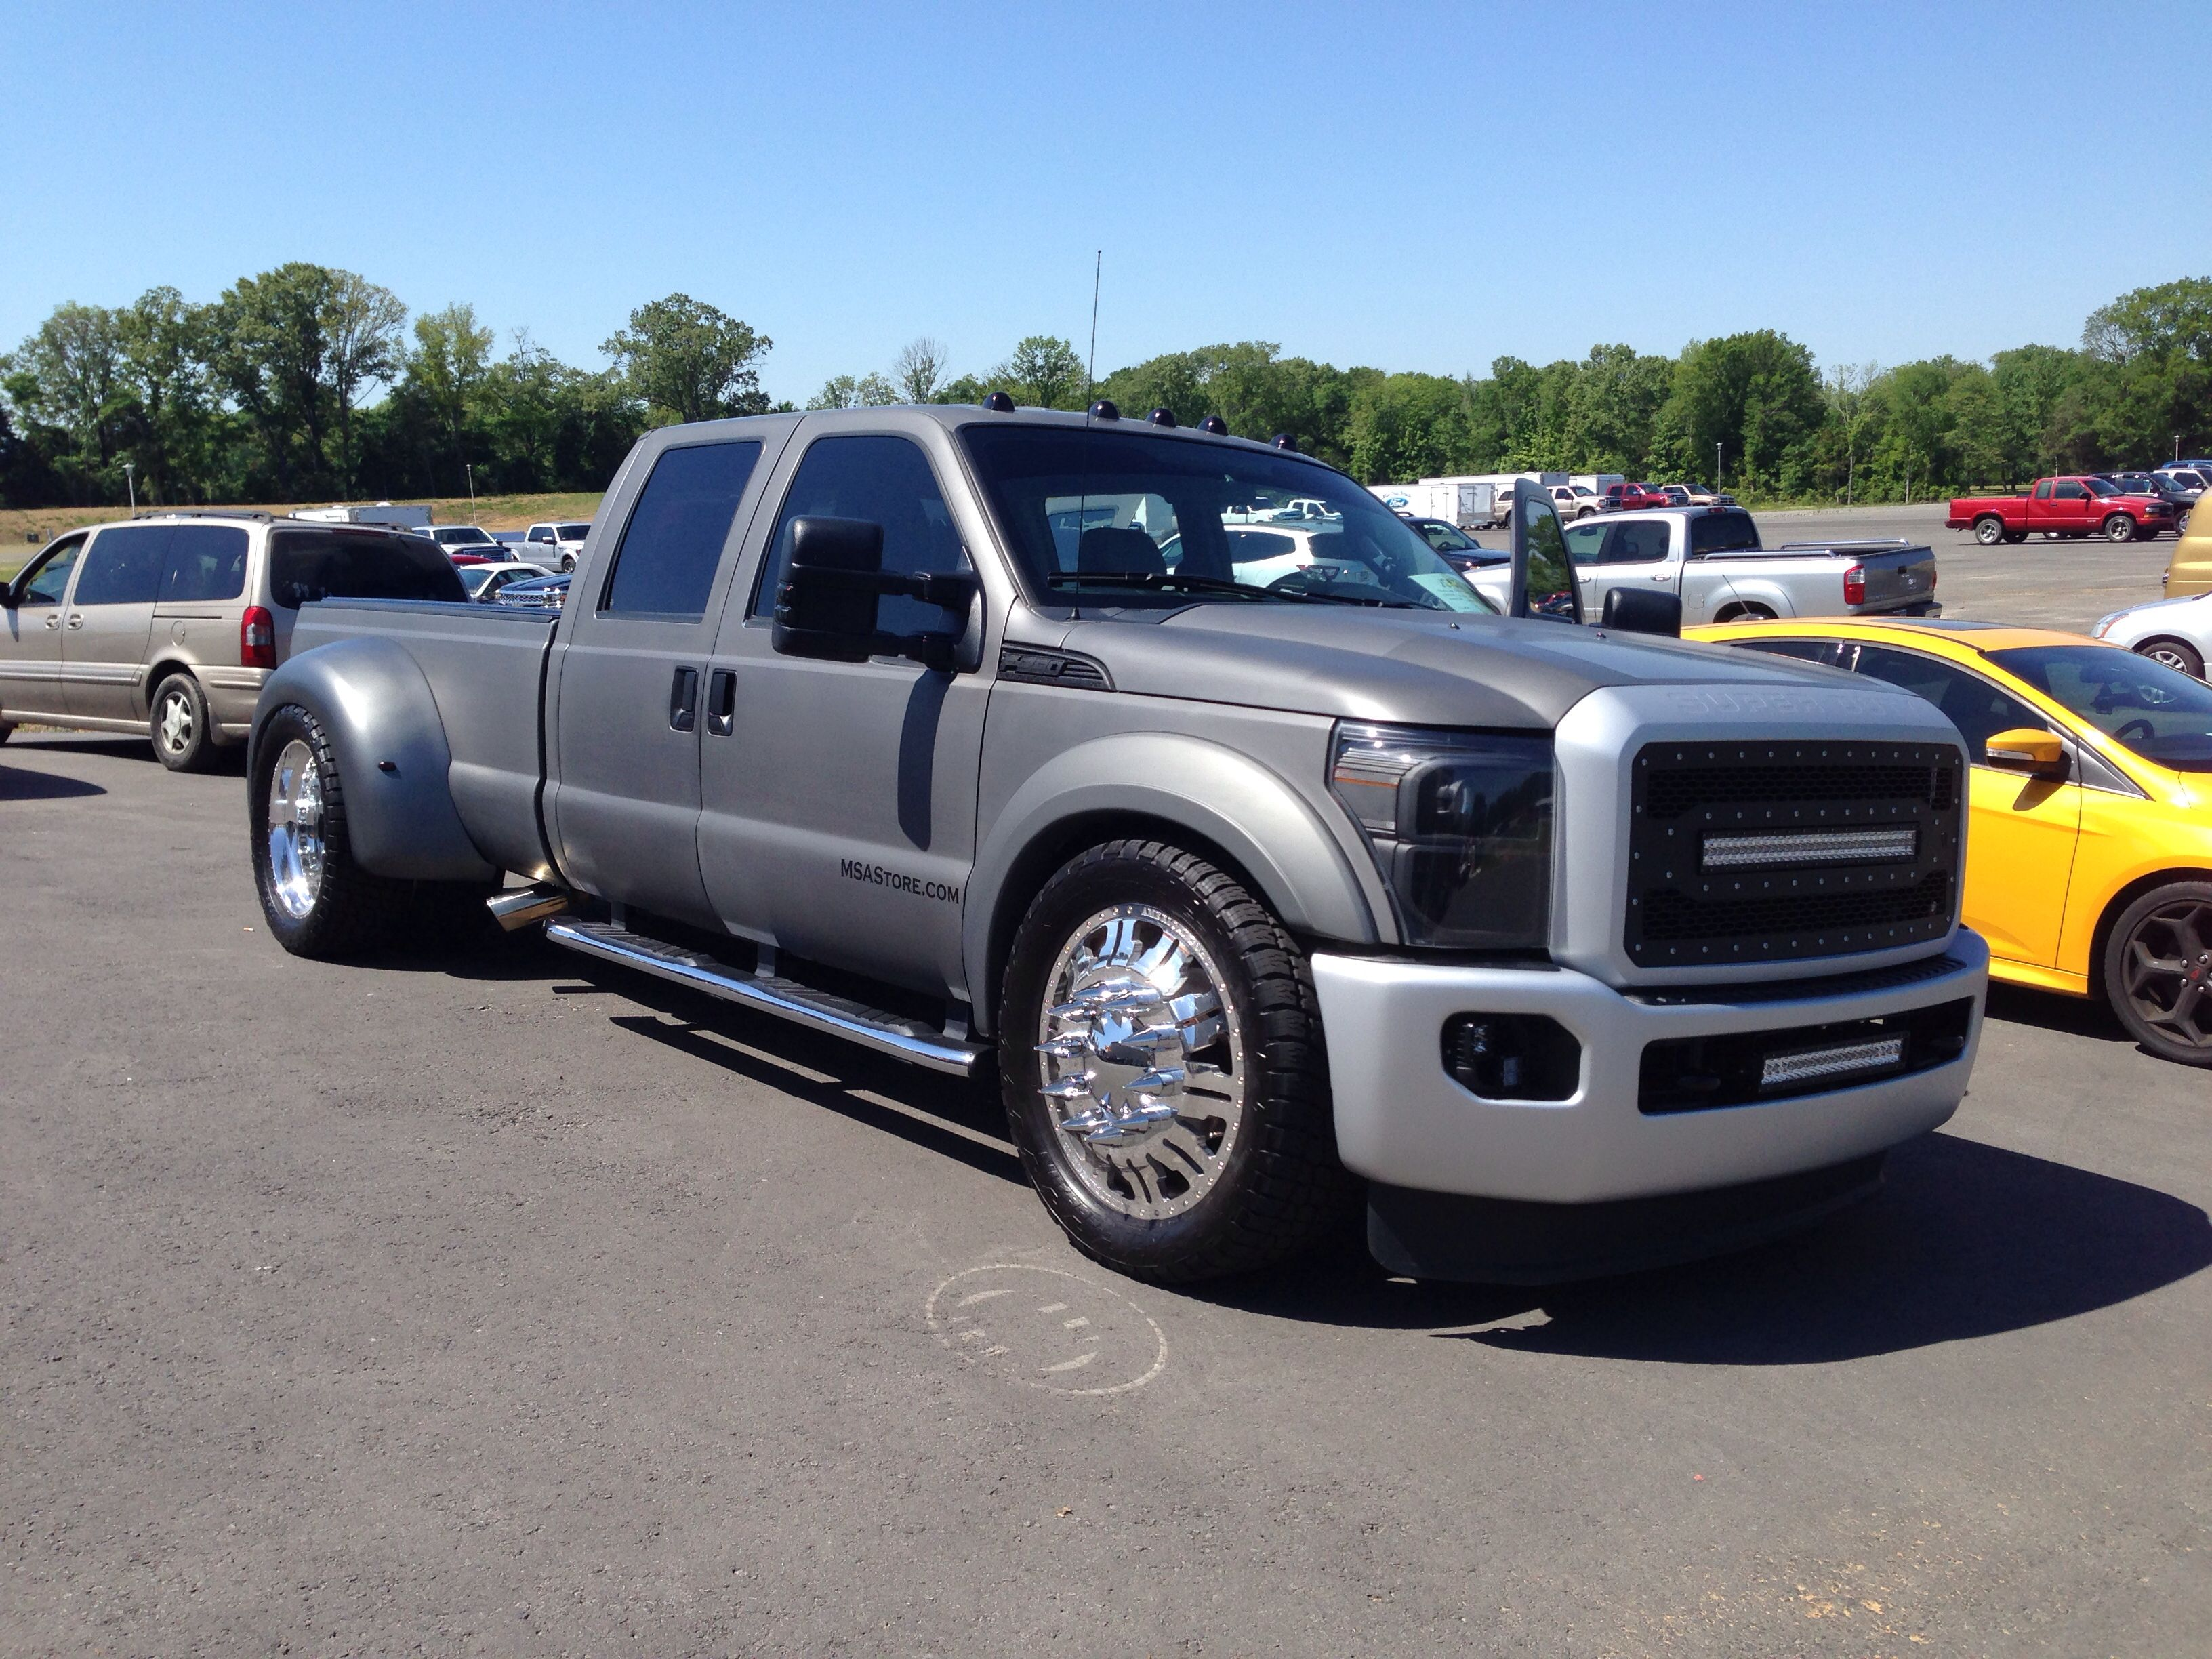 111 Best Trucks Images On Pinterest Cars 4x4 And Car